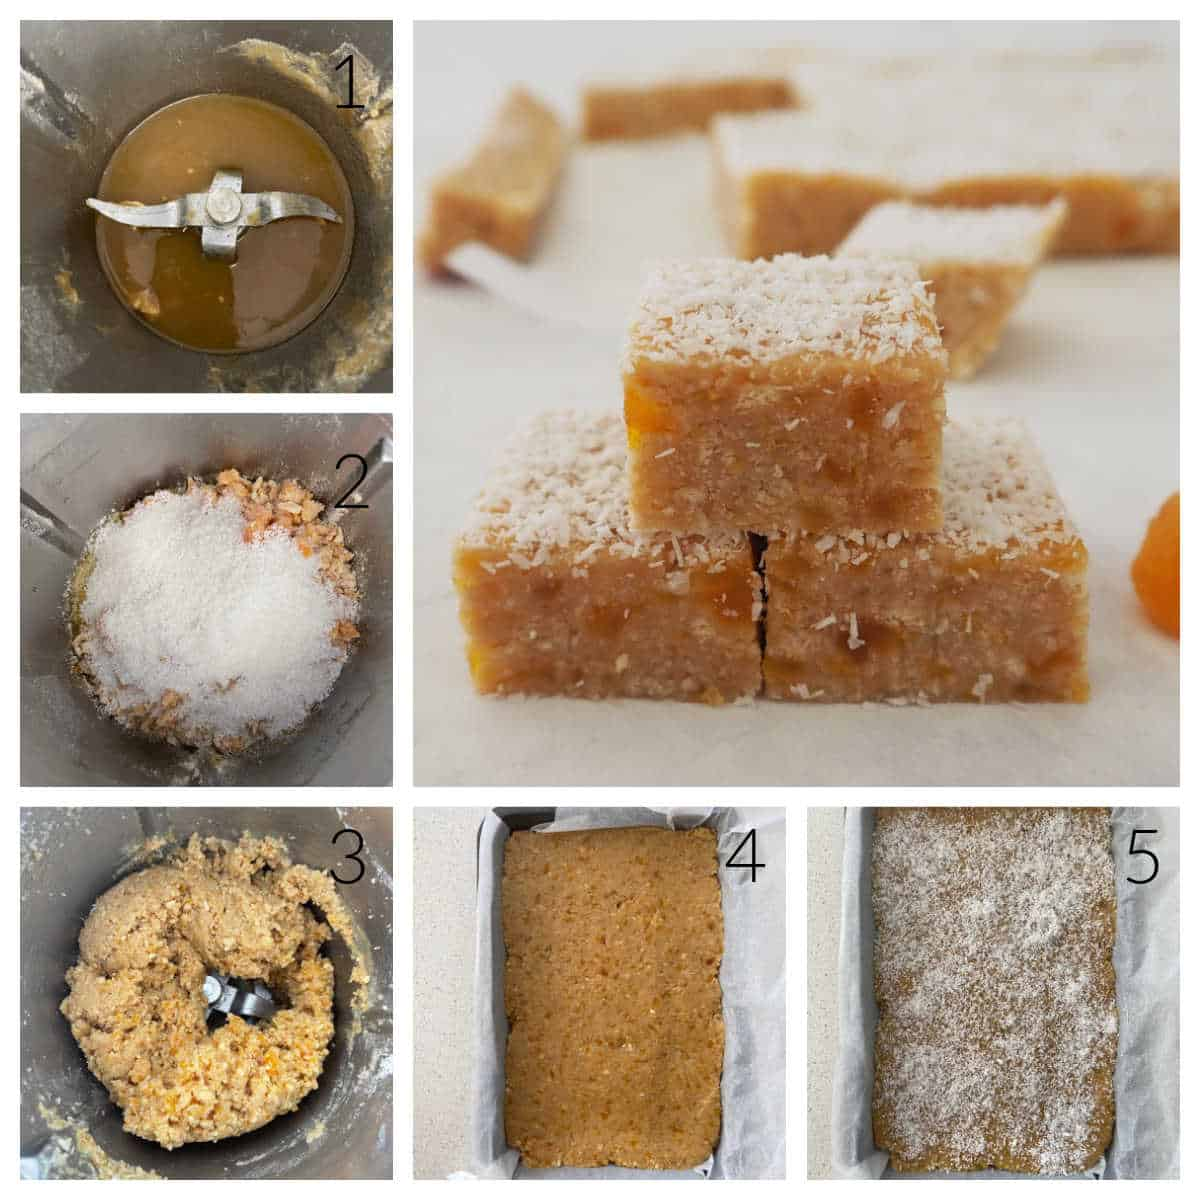 Collage of photos showing the steps to make apricot slice